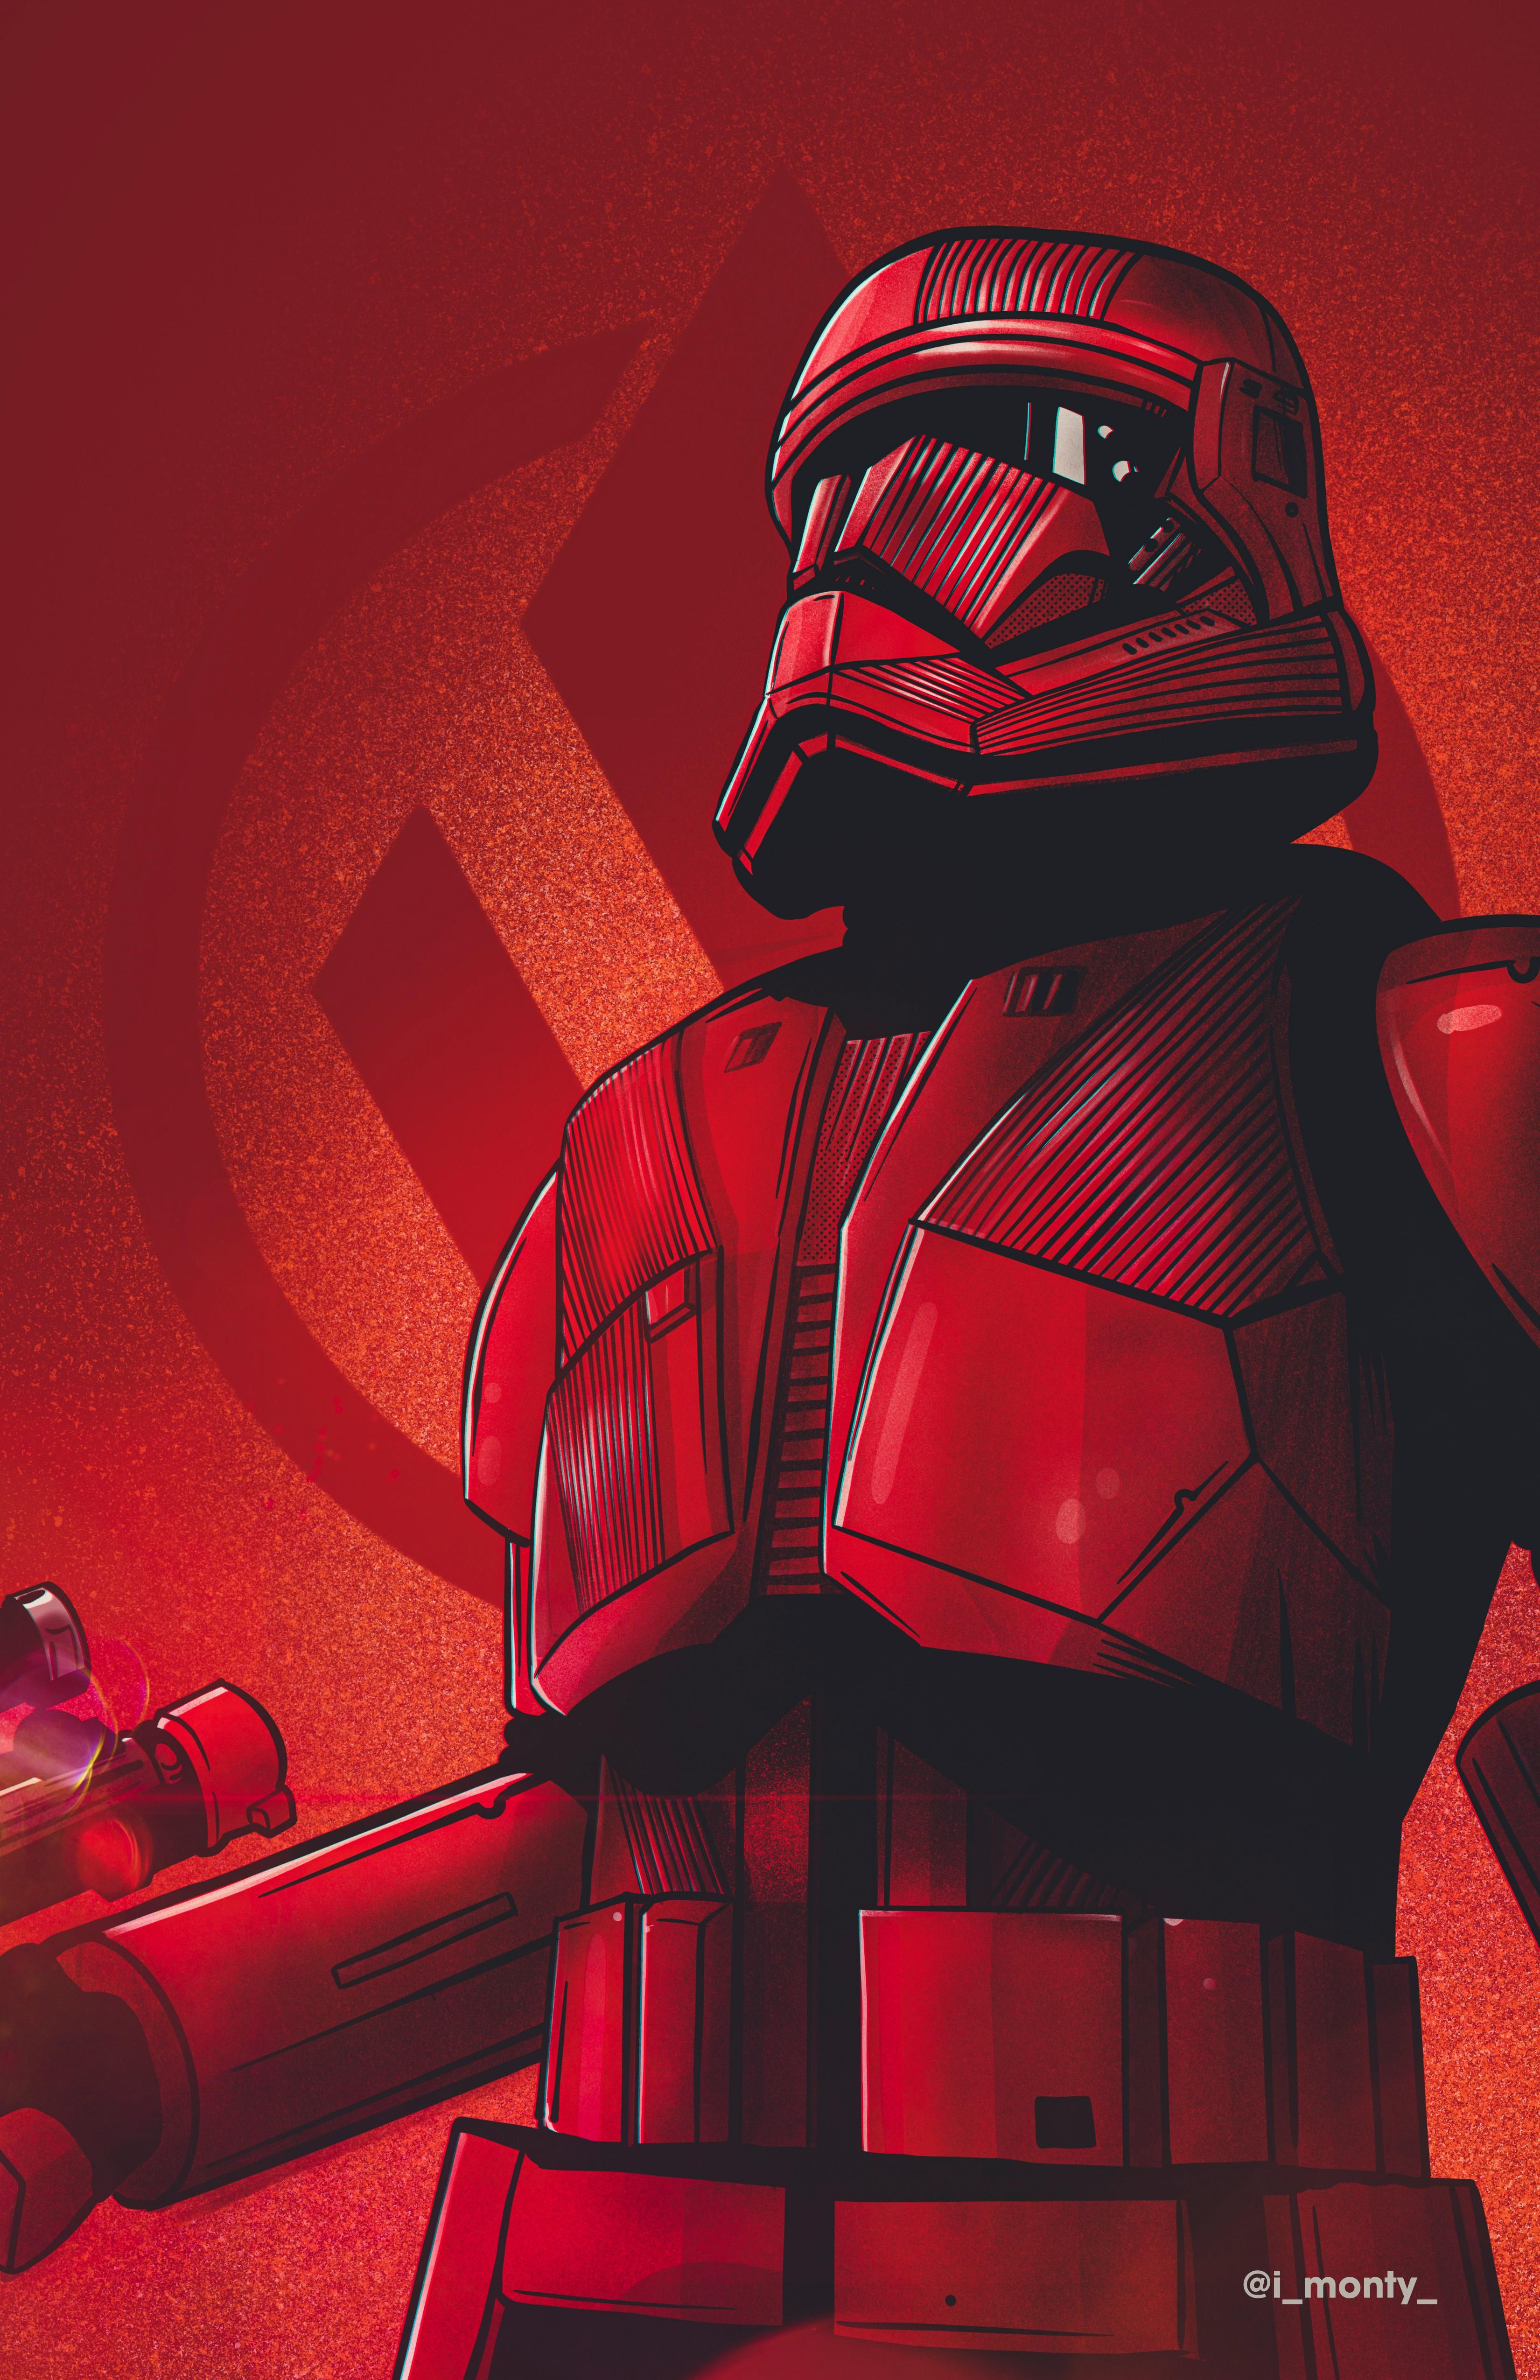 Here S My Sith Trooper Illustration Hope You Enjoy Https Ift Tt 3ab40qj In 2020 Star Wars Wallpaper Star Wars Characters Pictures Star Wars Images